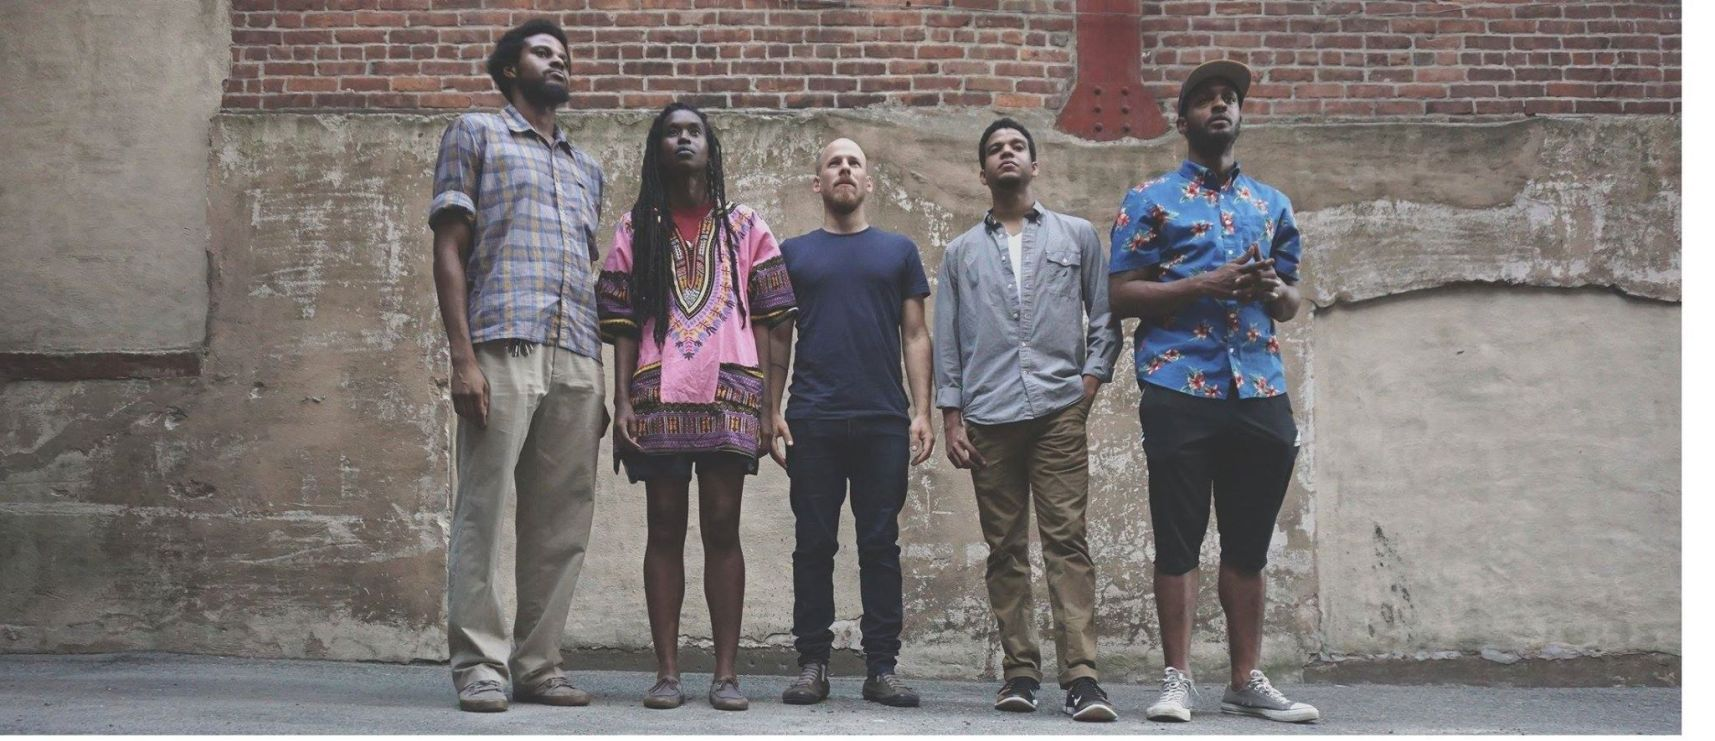 Irreversible Entanglements' share self-titled debut